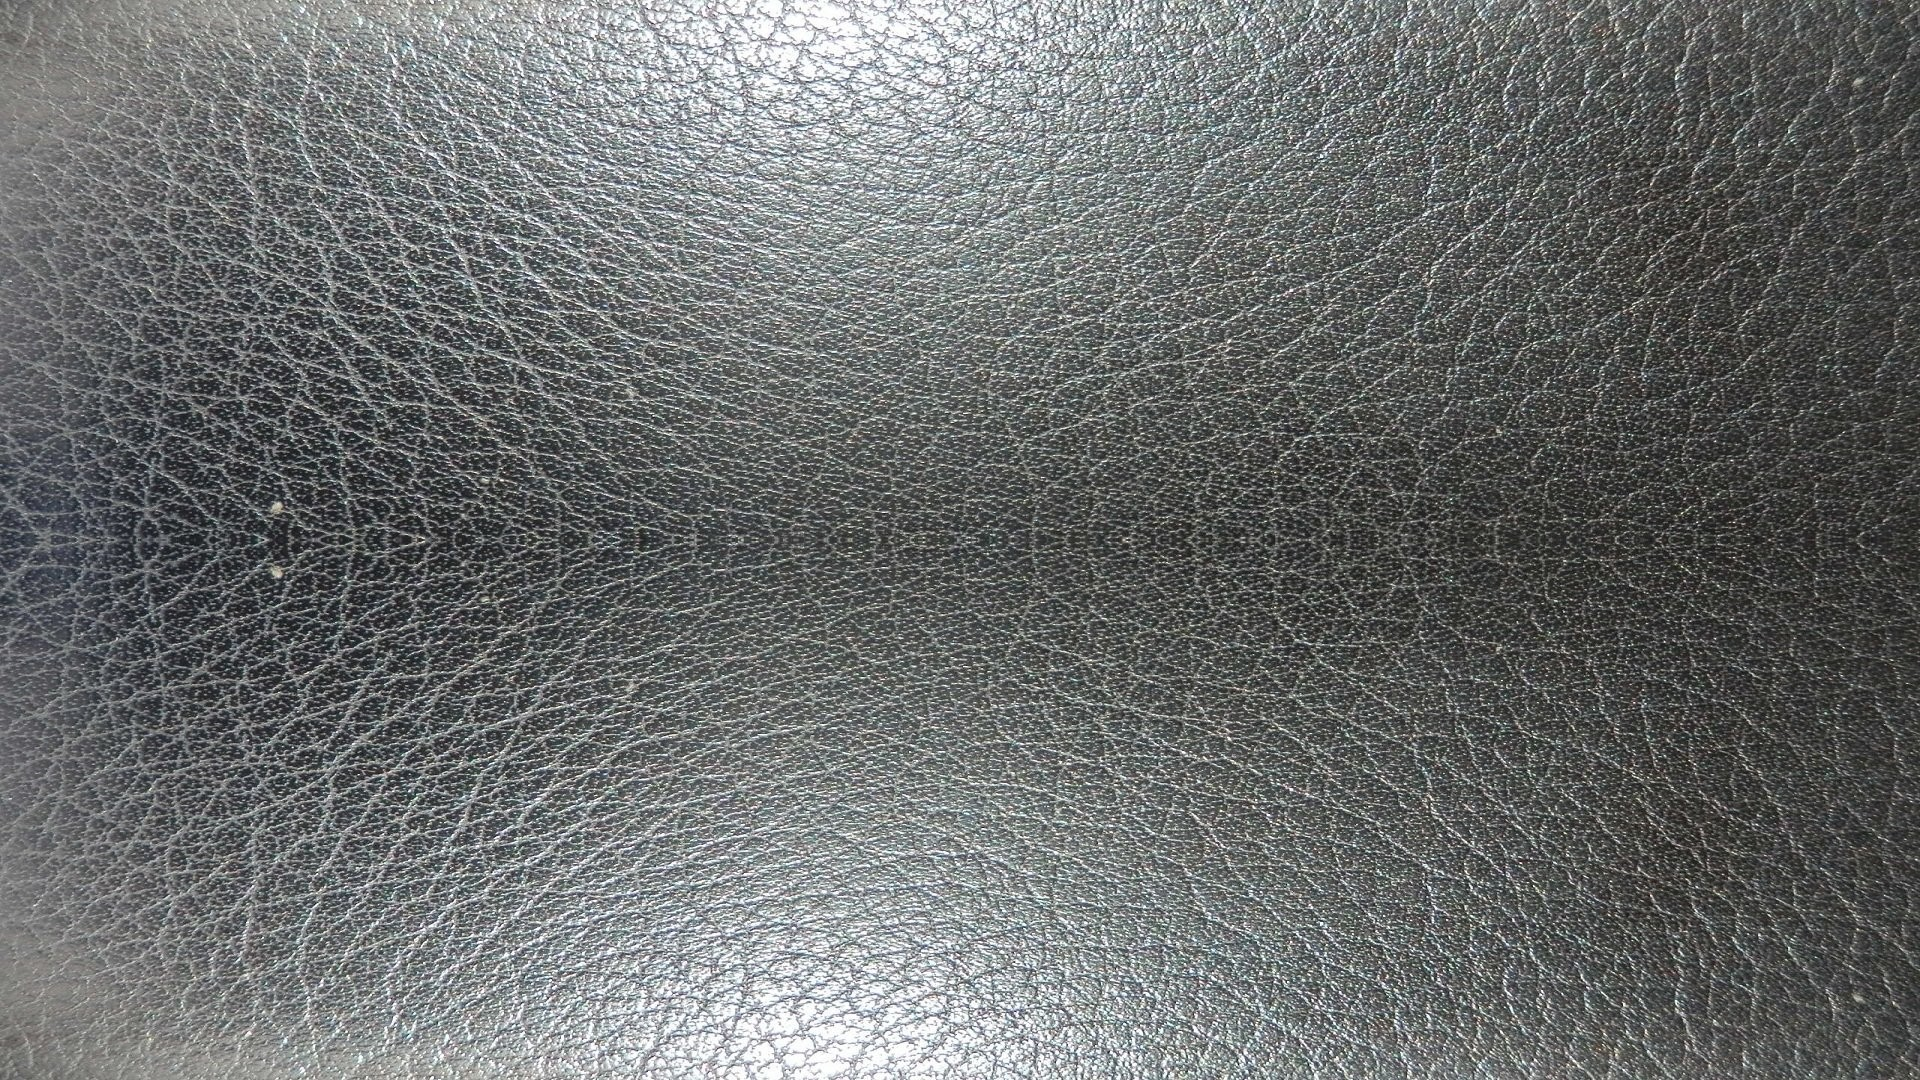 leather textures light silver background